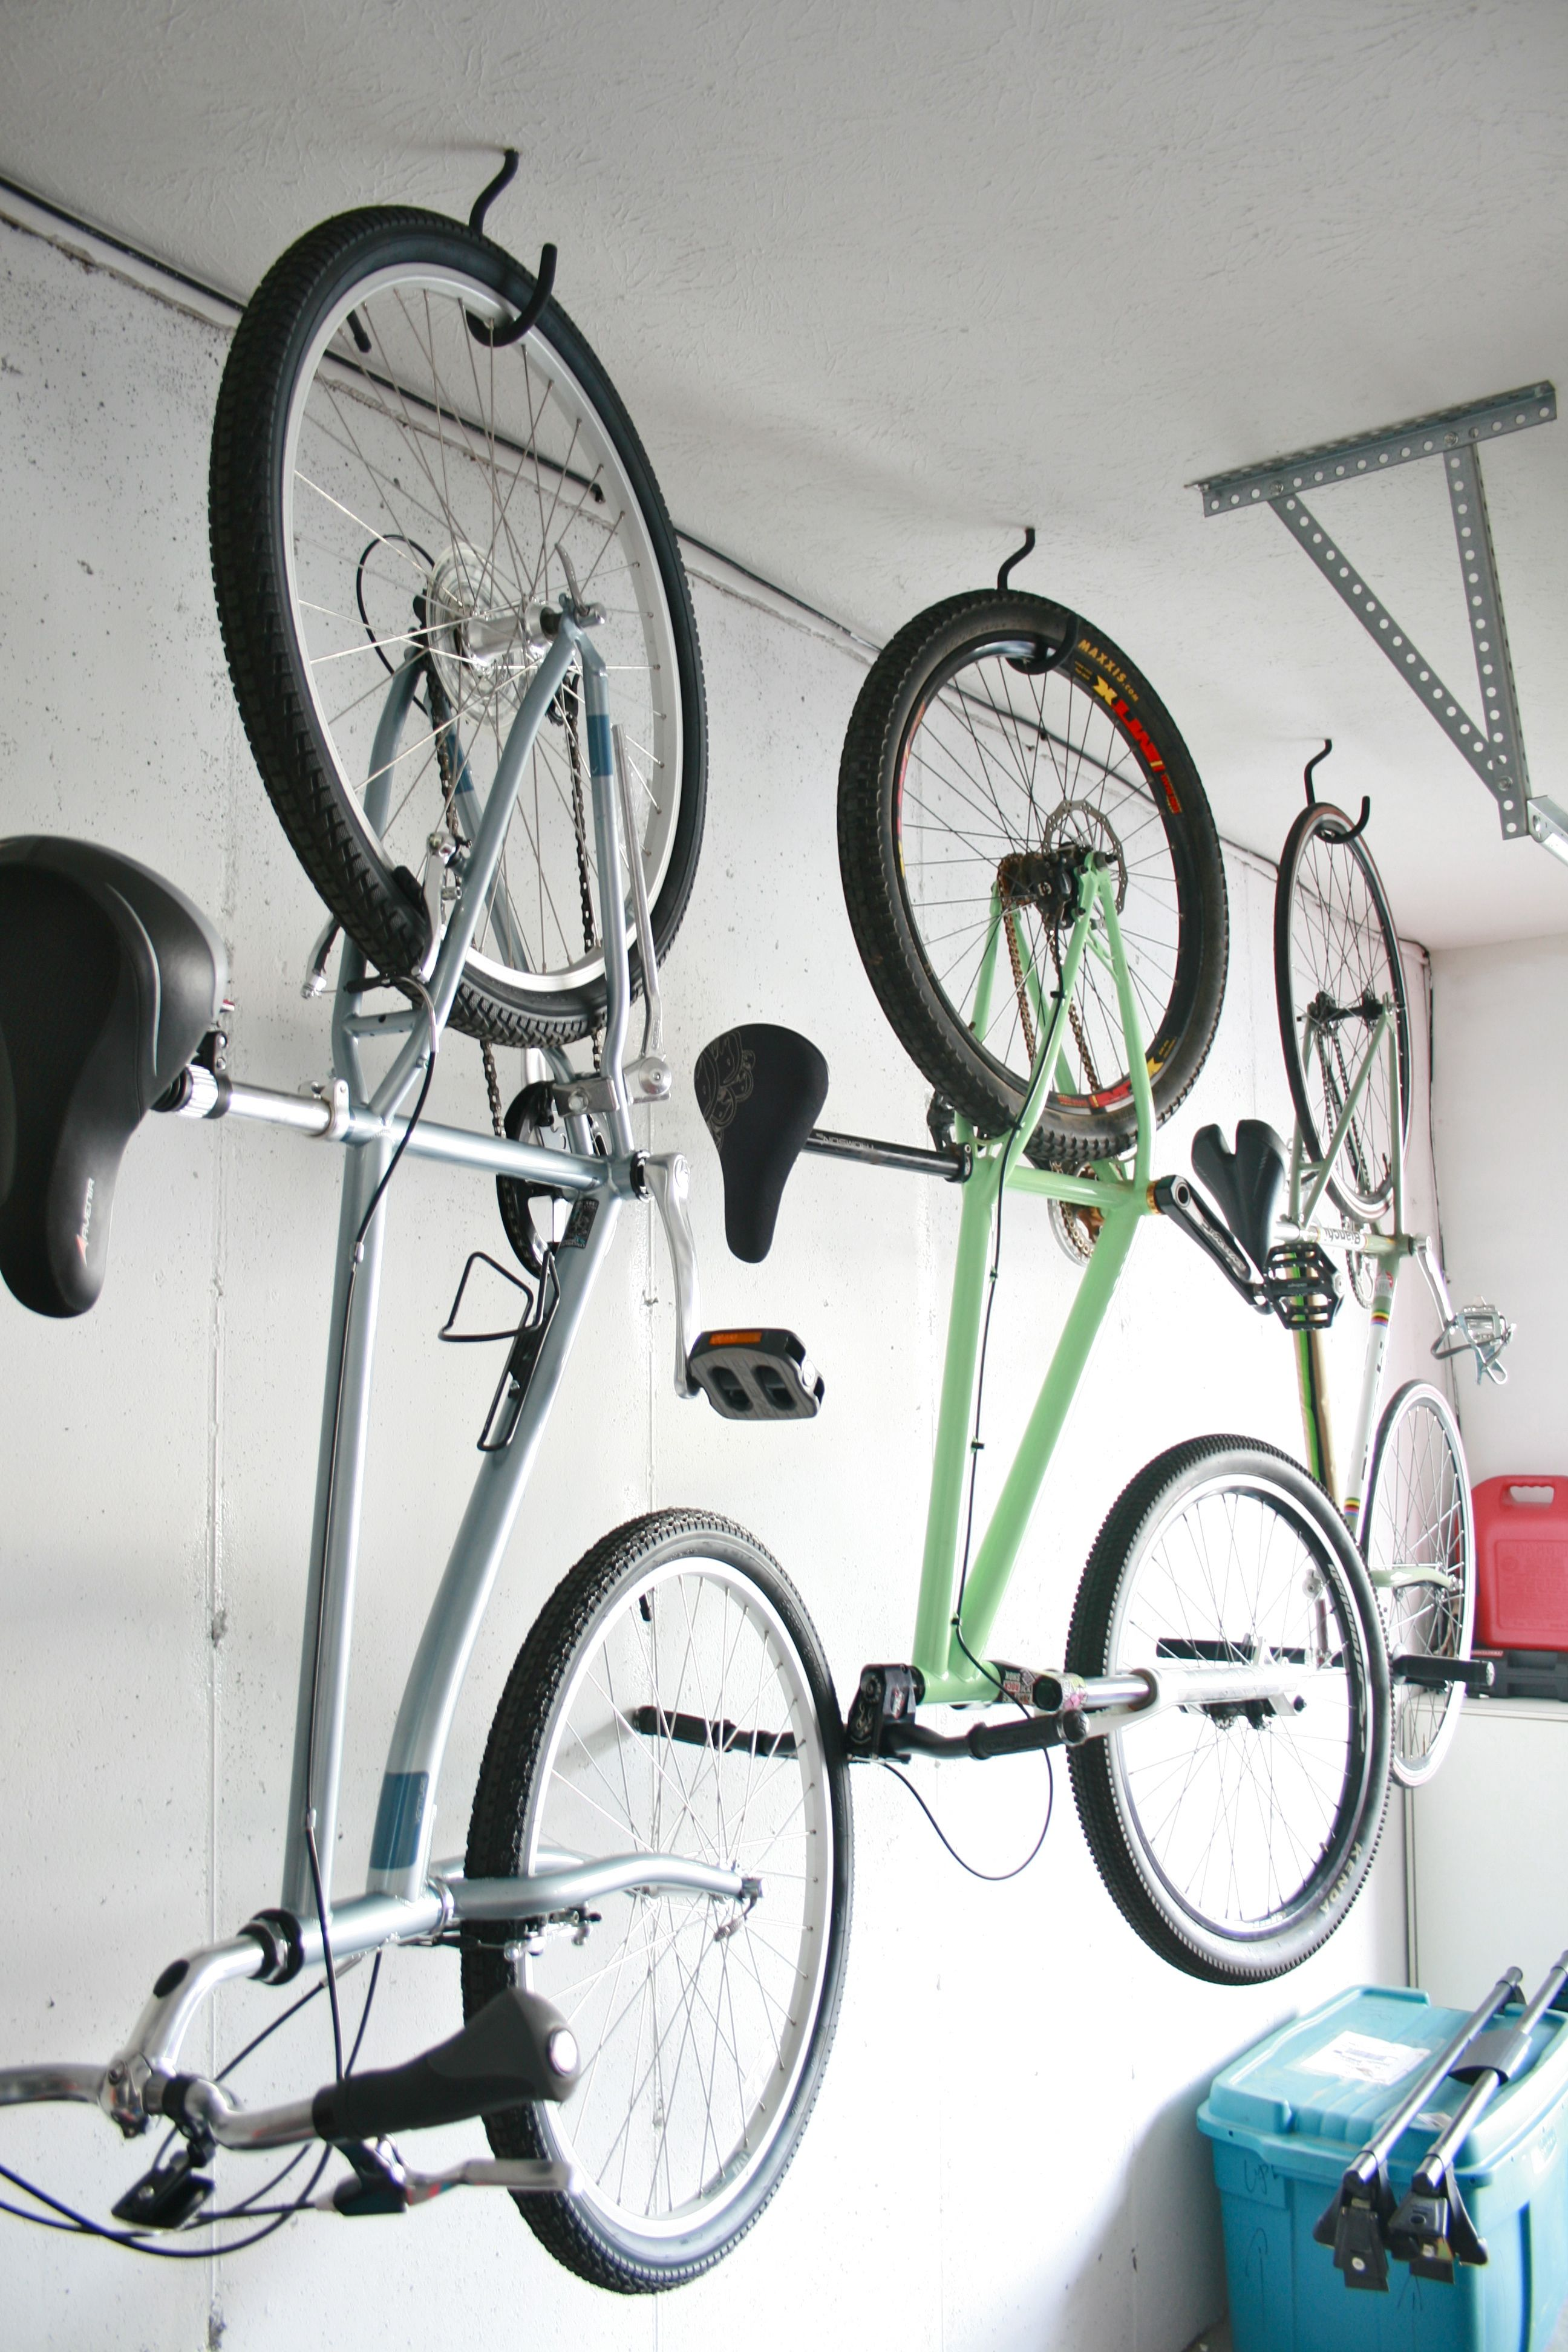 If you have multiple bikes and are hanging them by the wheels, you can alternate front and rear wheel hanging so the handlebars don't get in the way of each other. Hoist bike storage is a nice alternative to the standard ceiling rack, and ideal for high ceilings when you can't easily reach your bike on a standard hook or mount. Hoists raise your bike up and out of the way so you can free up space in your garage, .